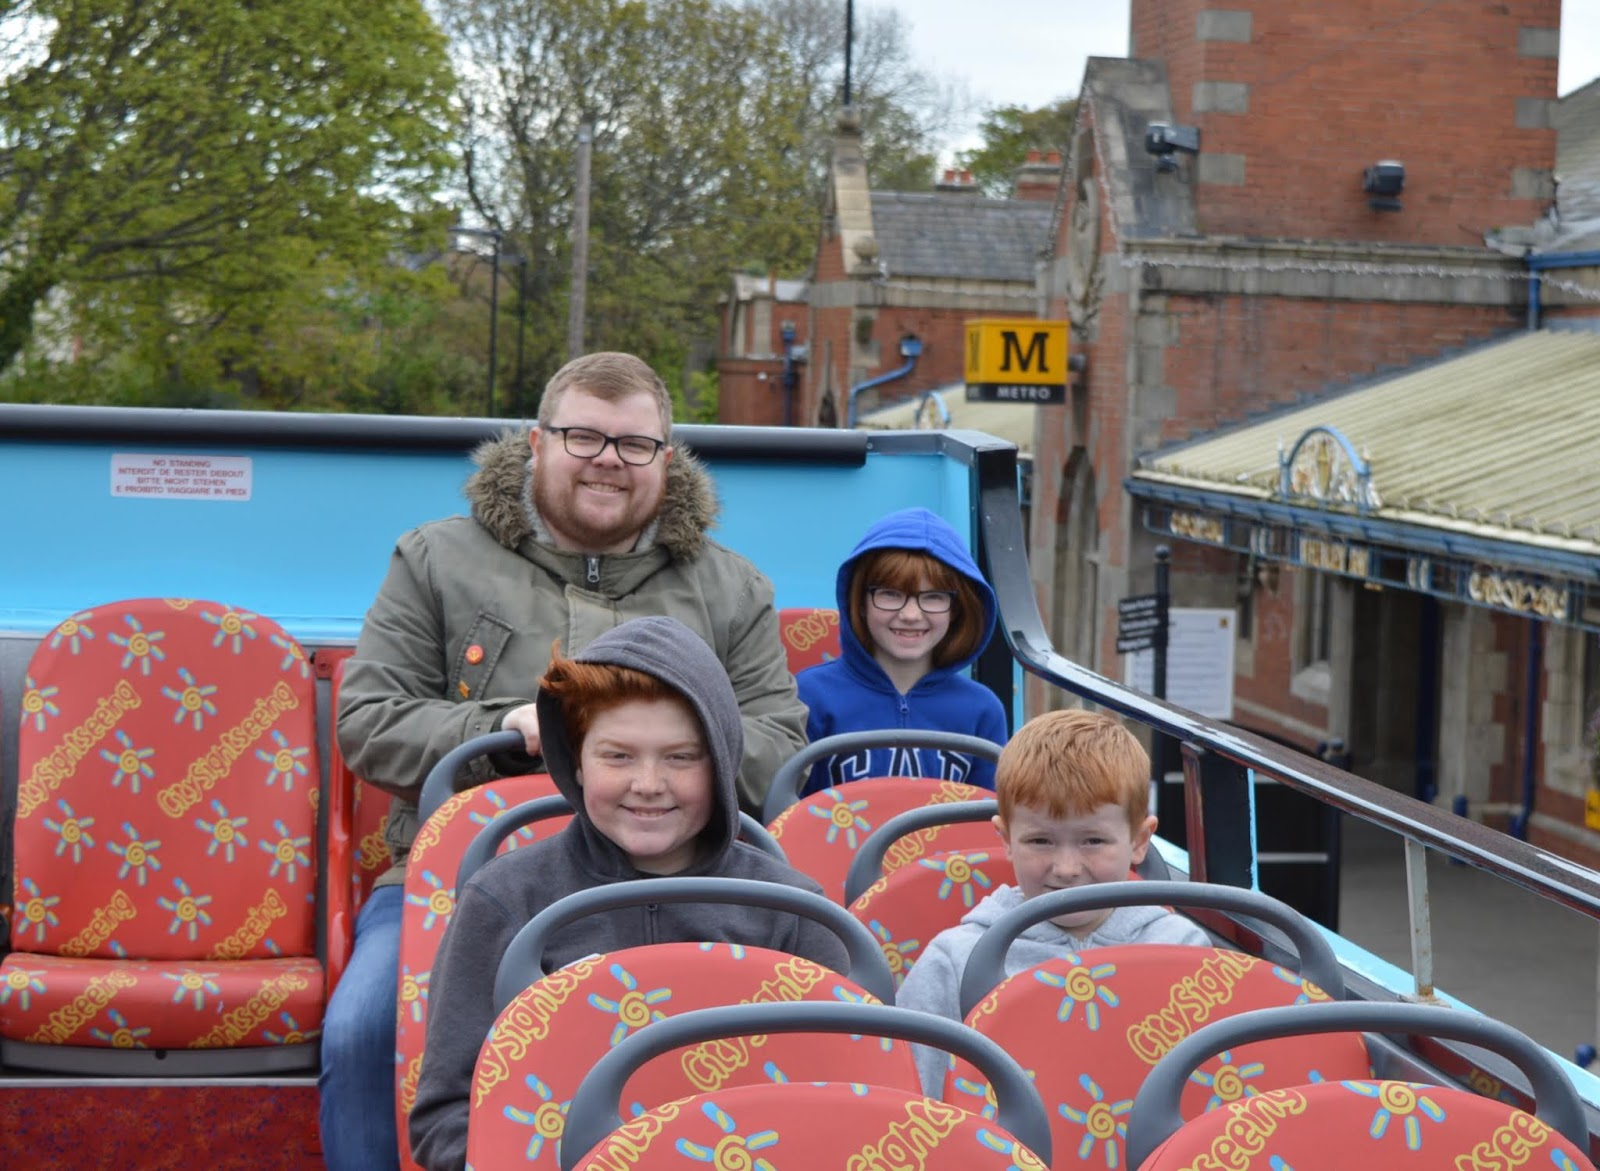 The Seasider Open Top Bus Tour Whitley Bay | Tickets, Prices, Timetables & Where To Visit - seating on top